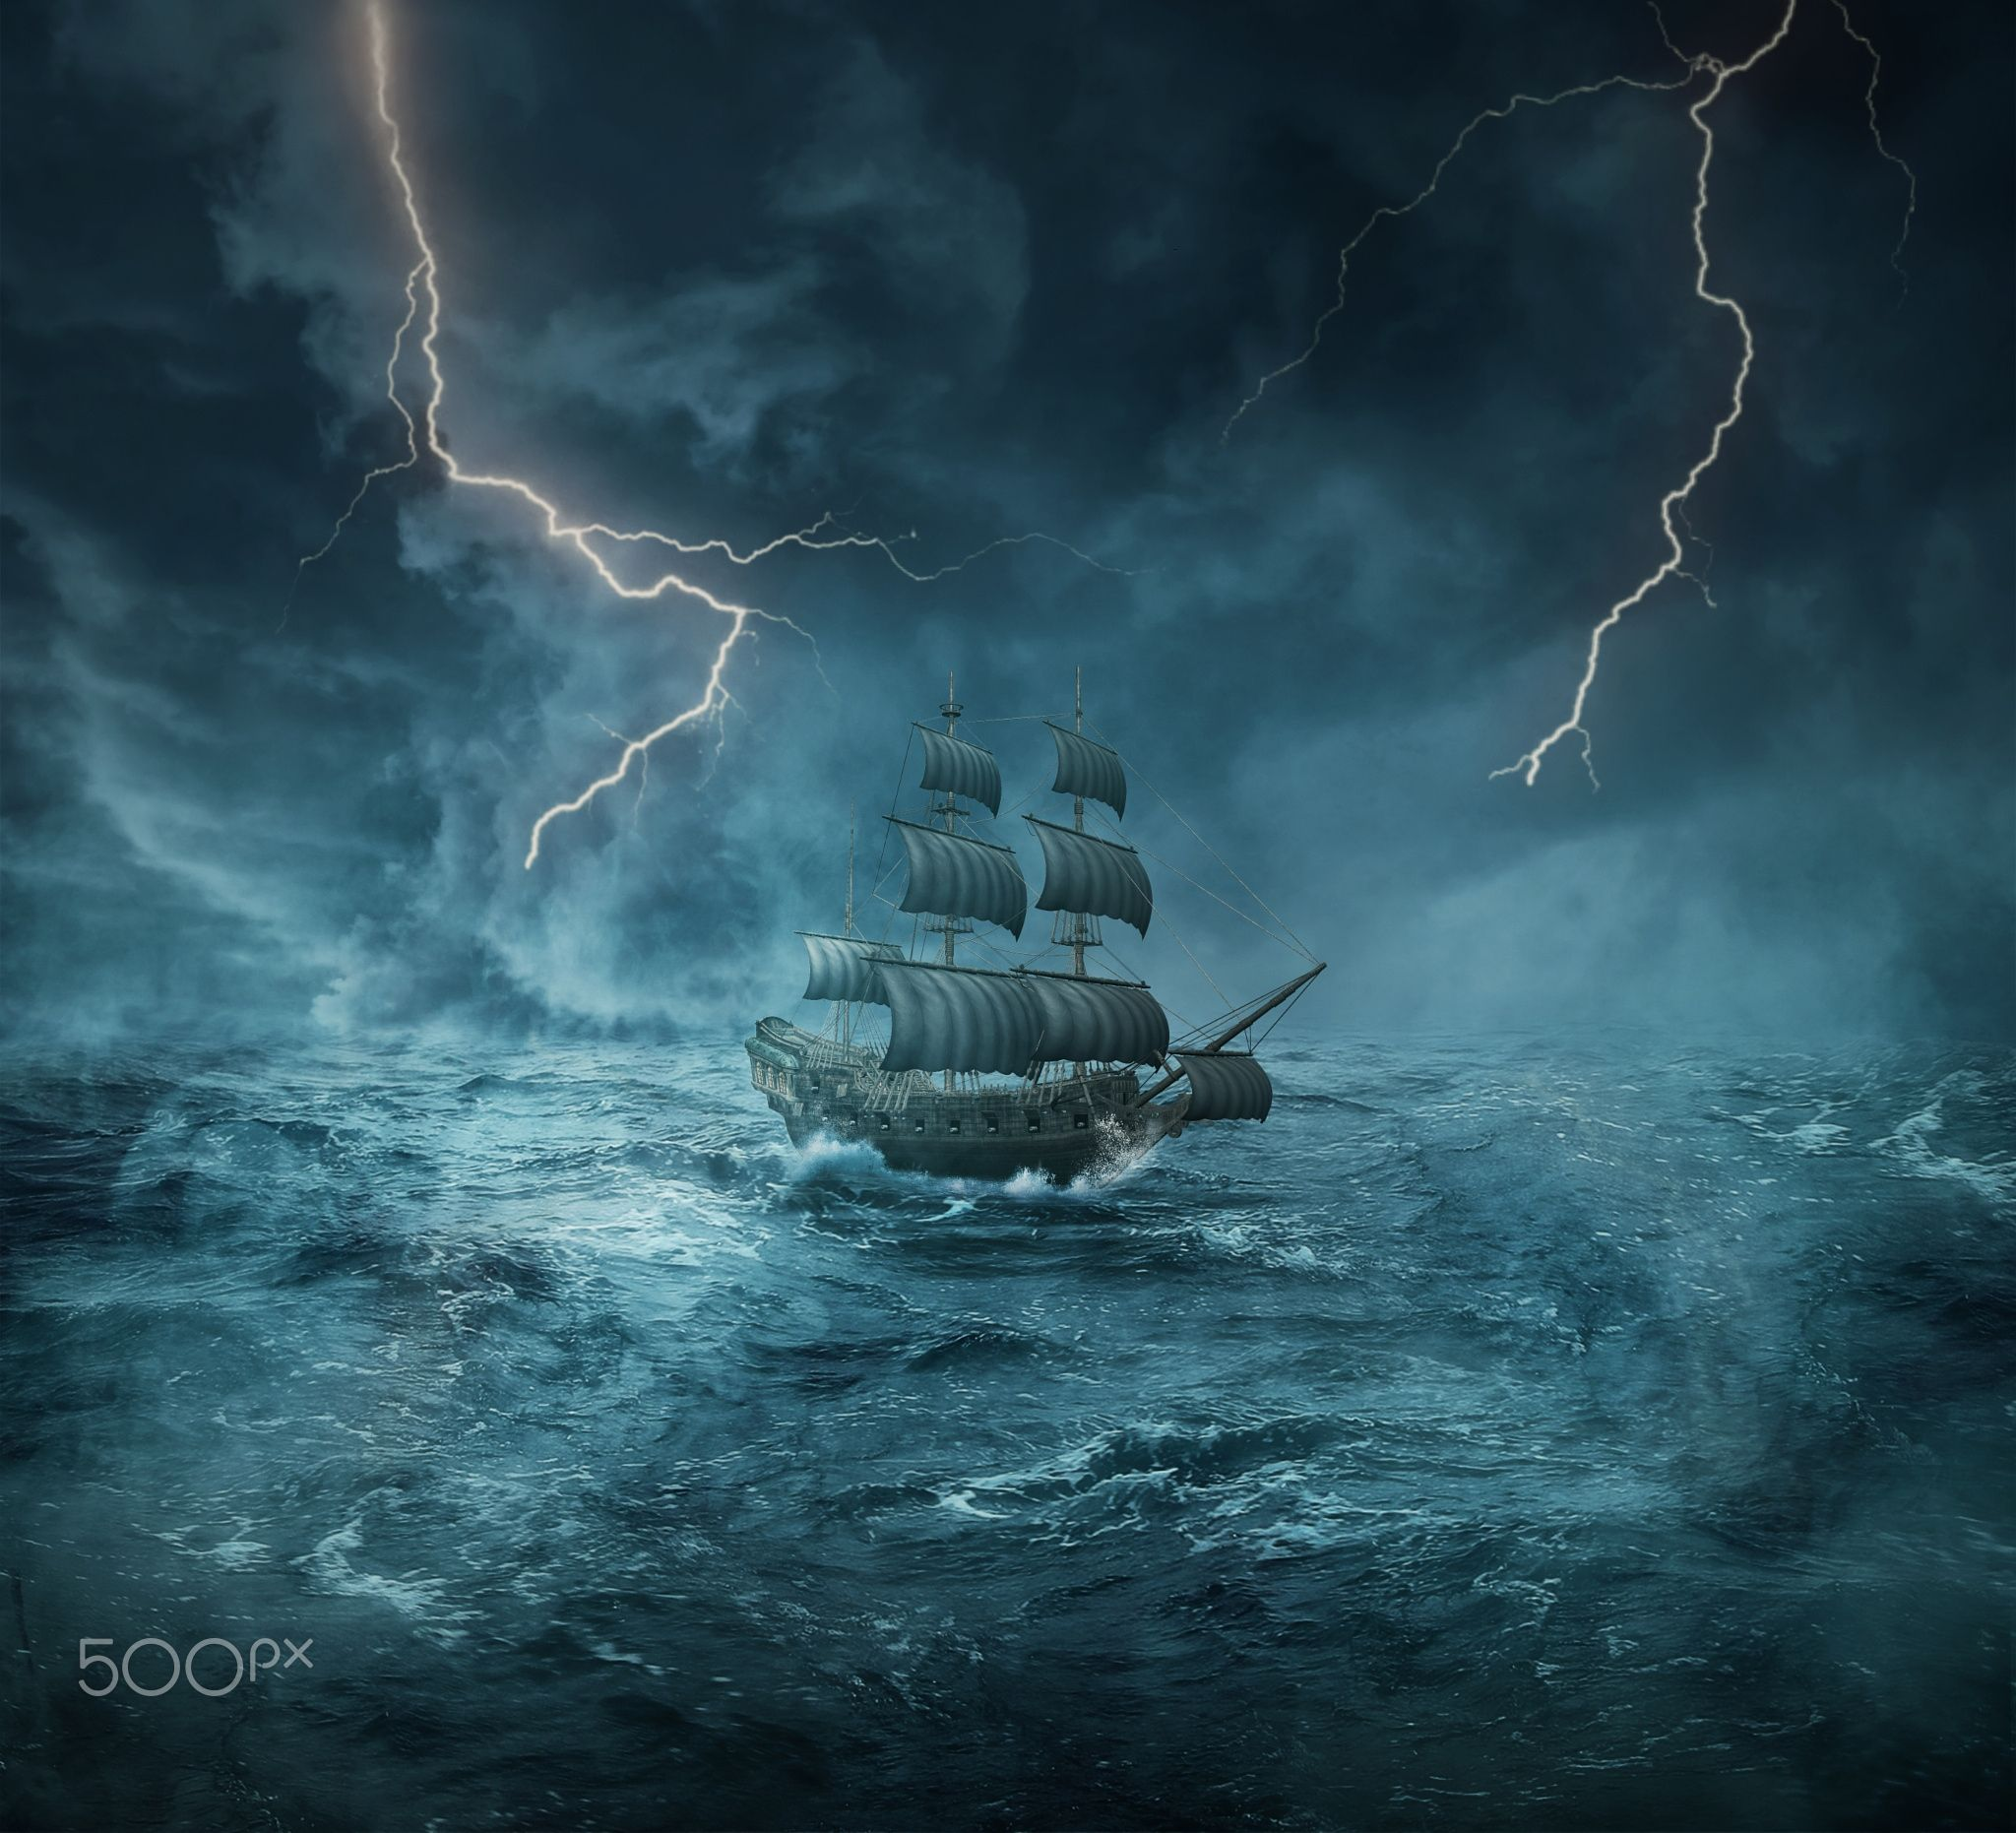 Fantasy ship cliff jolly roger pirate ship rock lightning wallpaper - Ghost Ship Vintage Old Ship Sailing Lost In The Ocean In A Stormy Night Ghost Shipjolly Rogerin The Oceanlightningsailingcaribbeanghostspiratesart